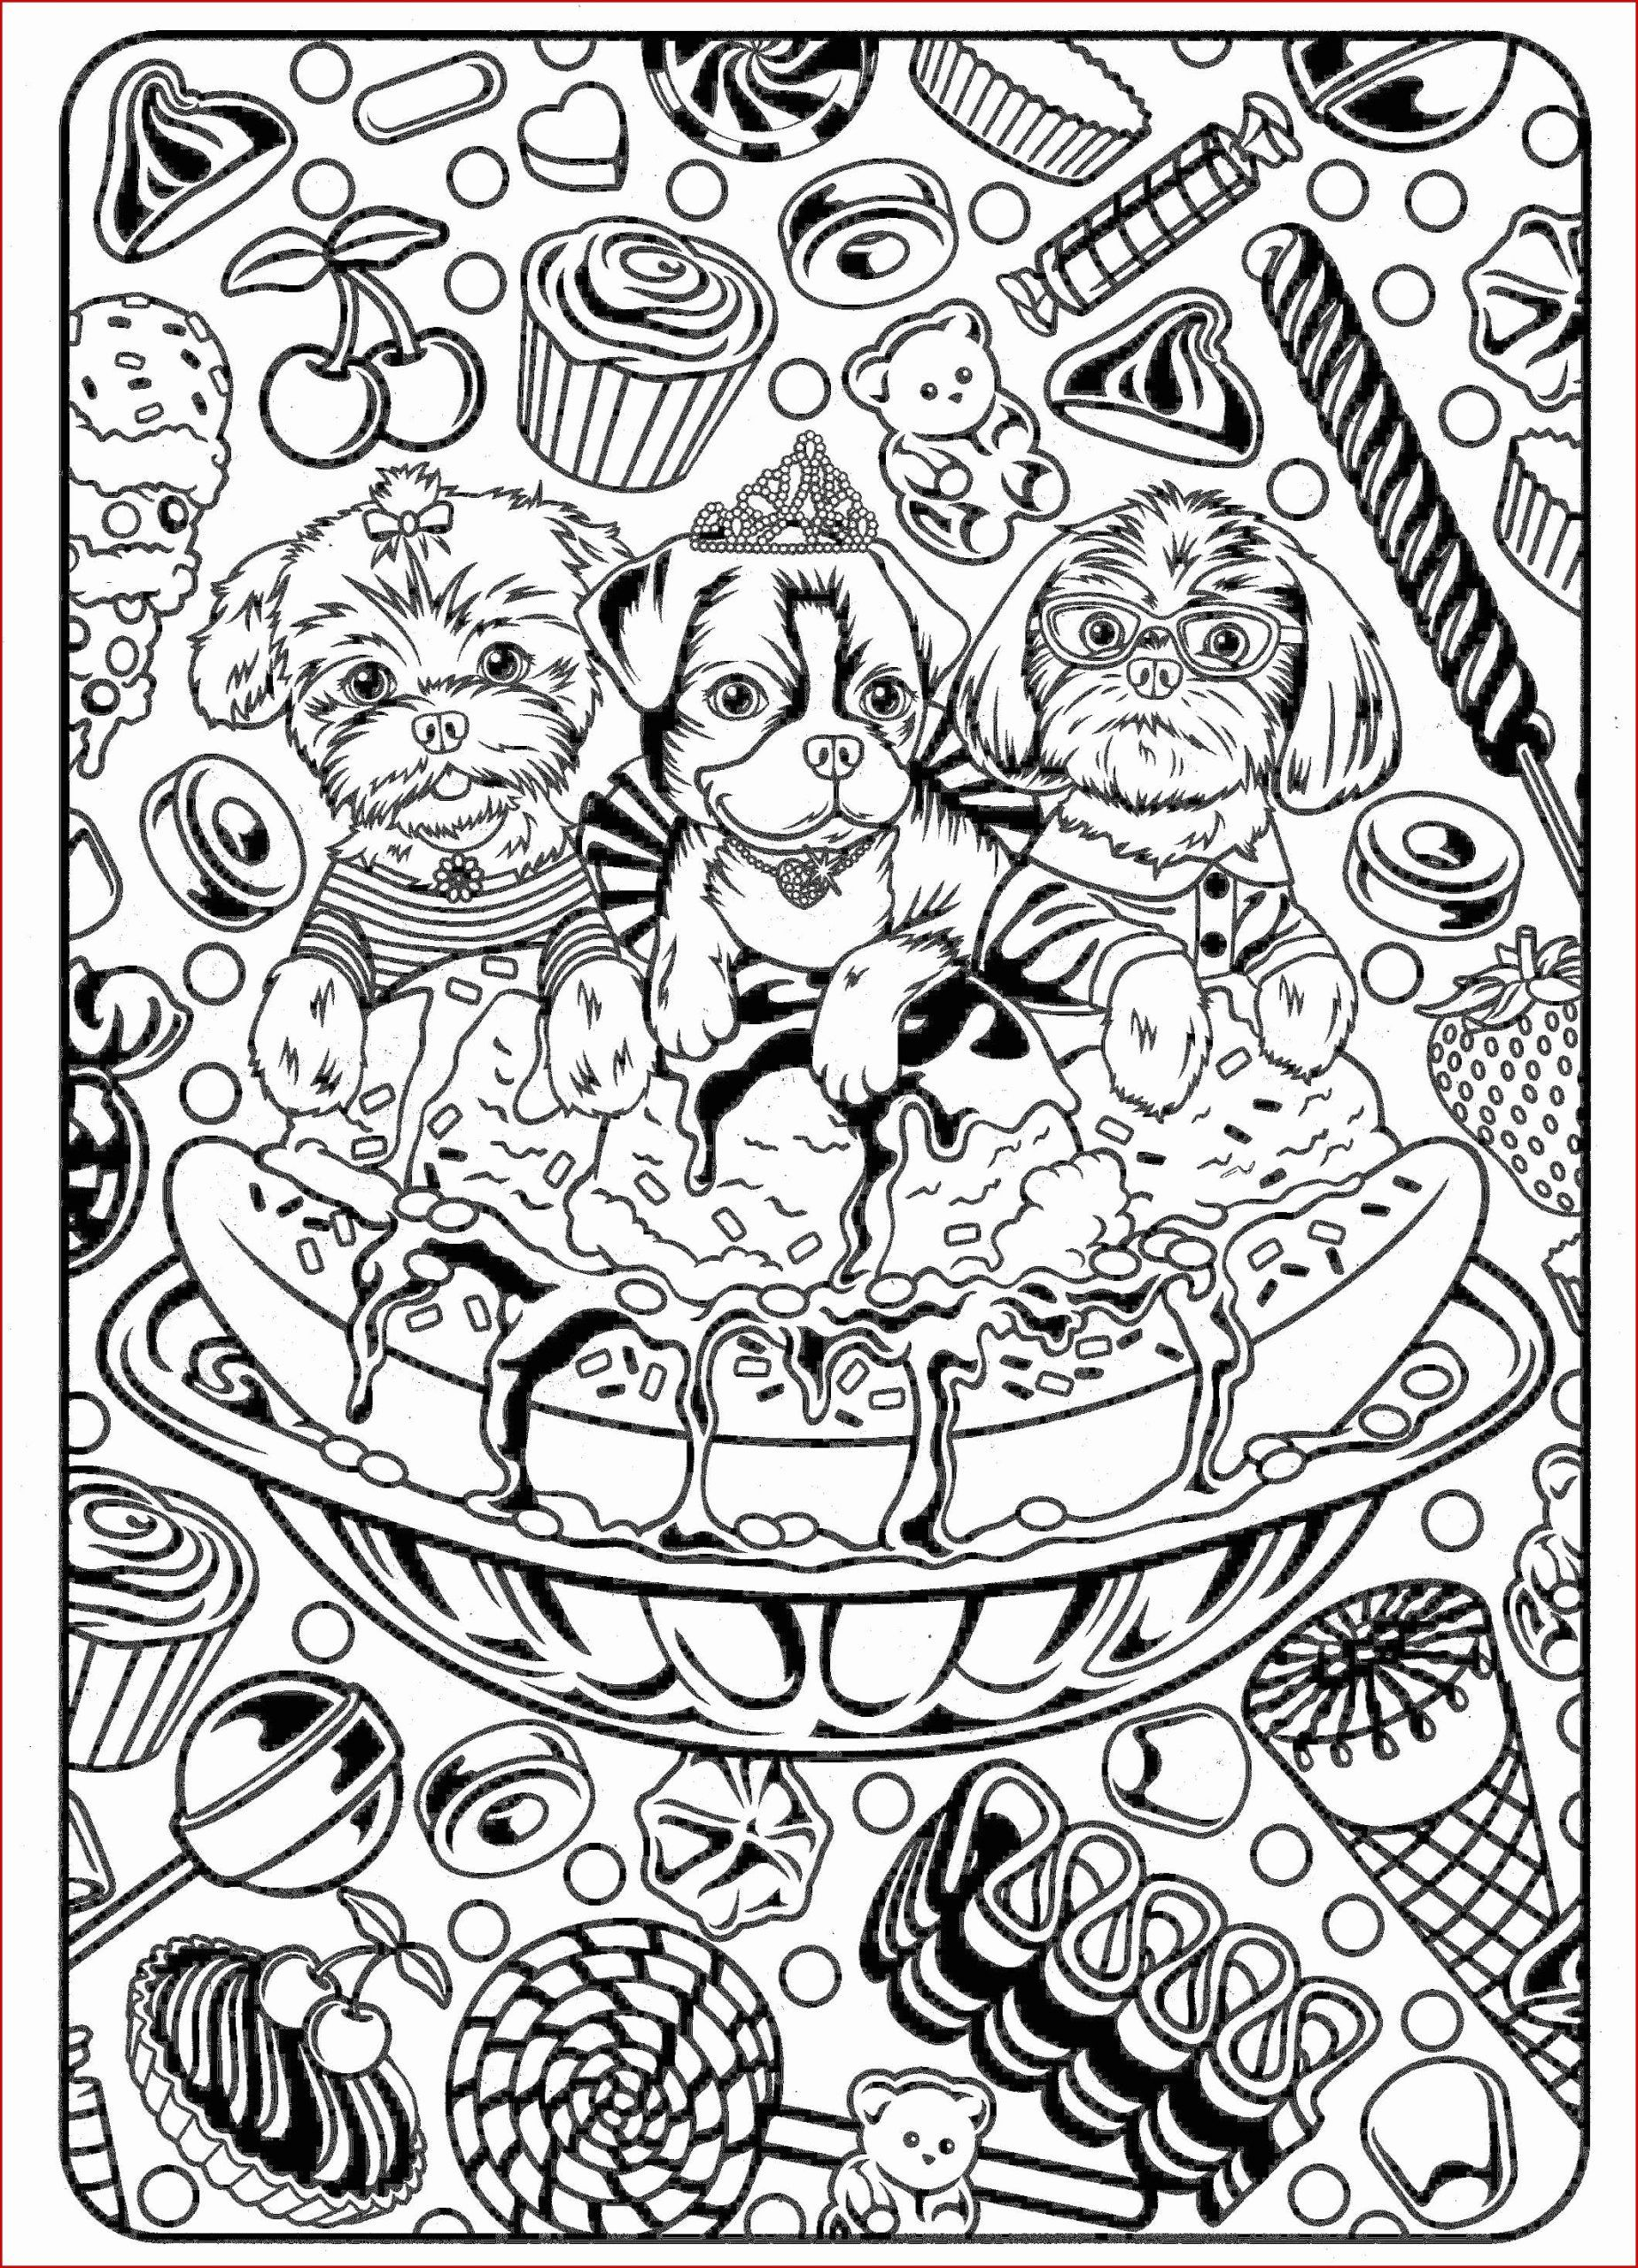 Detailed Easter Coloring Pages For Kids In 2020 Pokemon Coloring Pages Space Coloring Pages Cool Coloring Pages